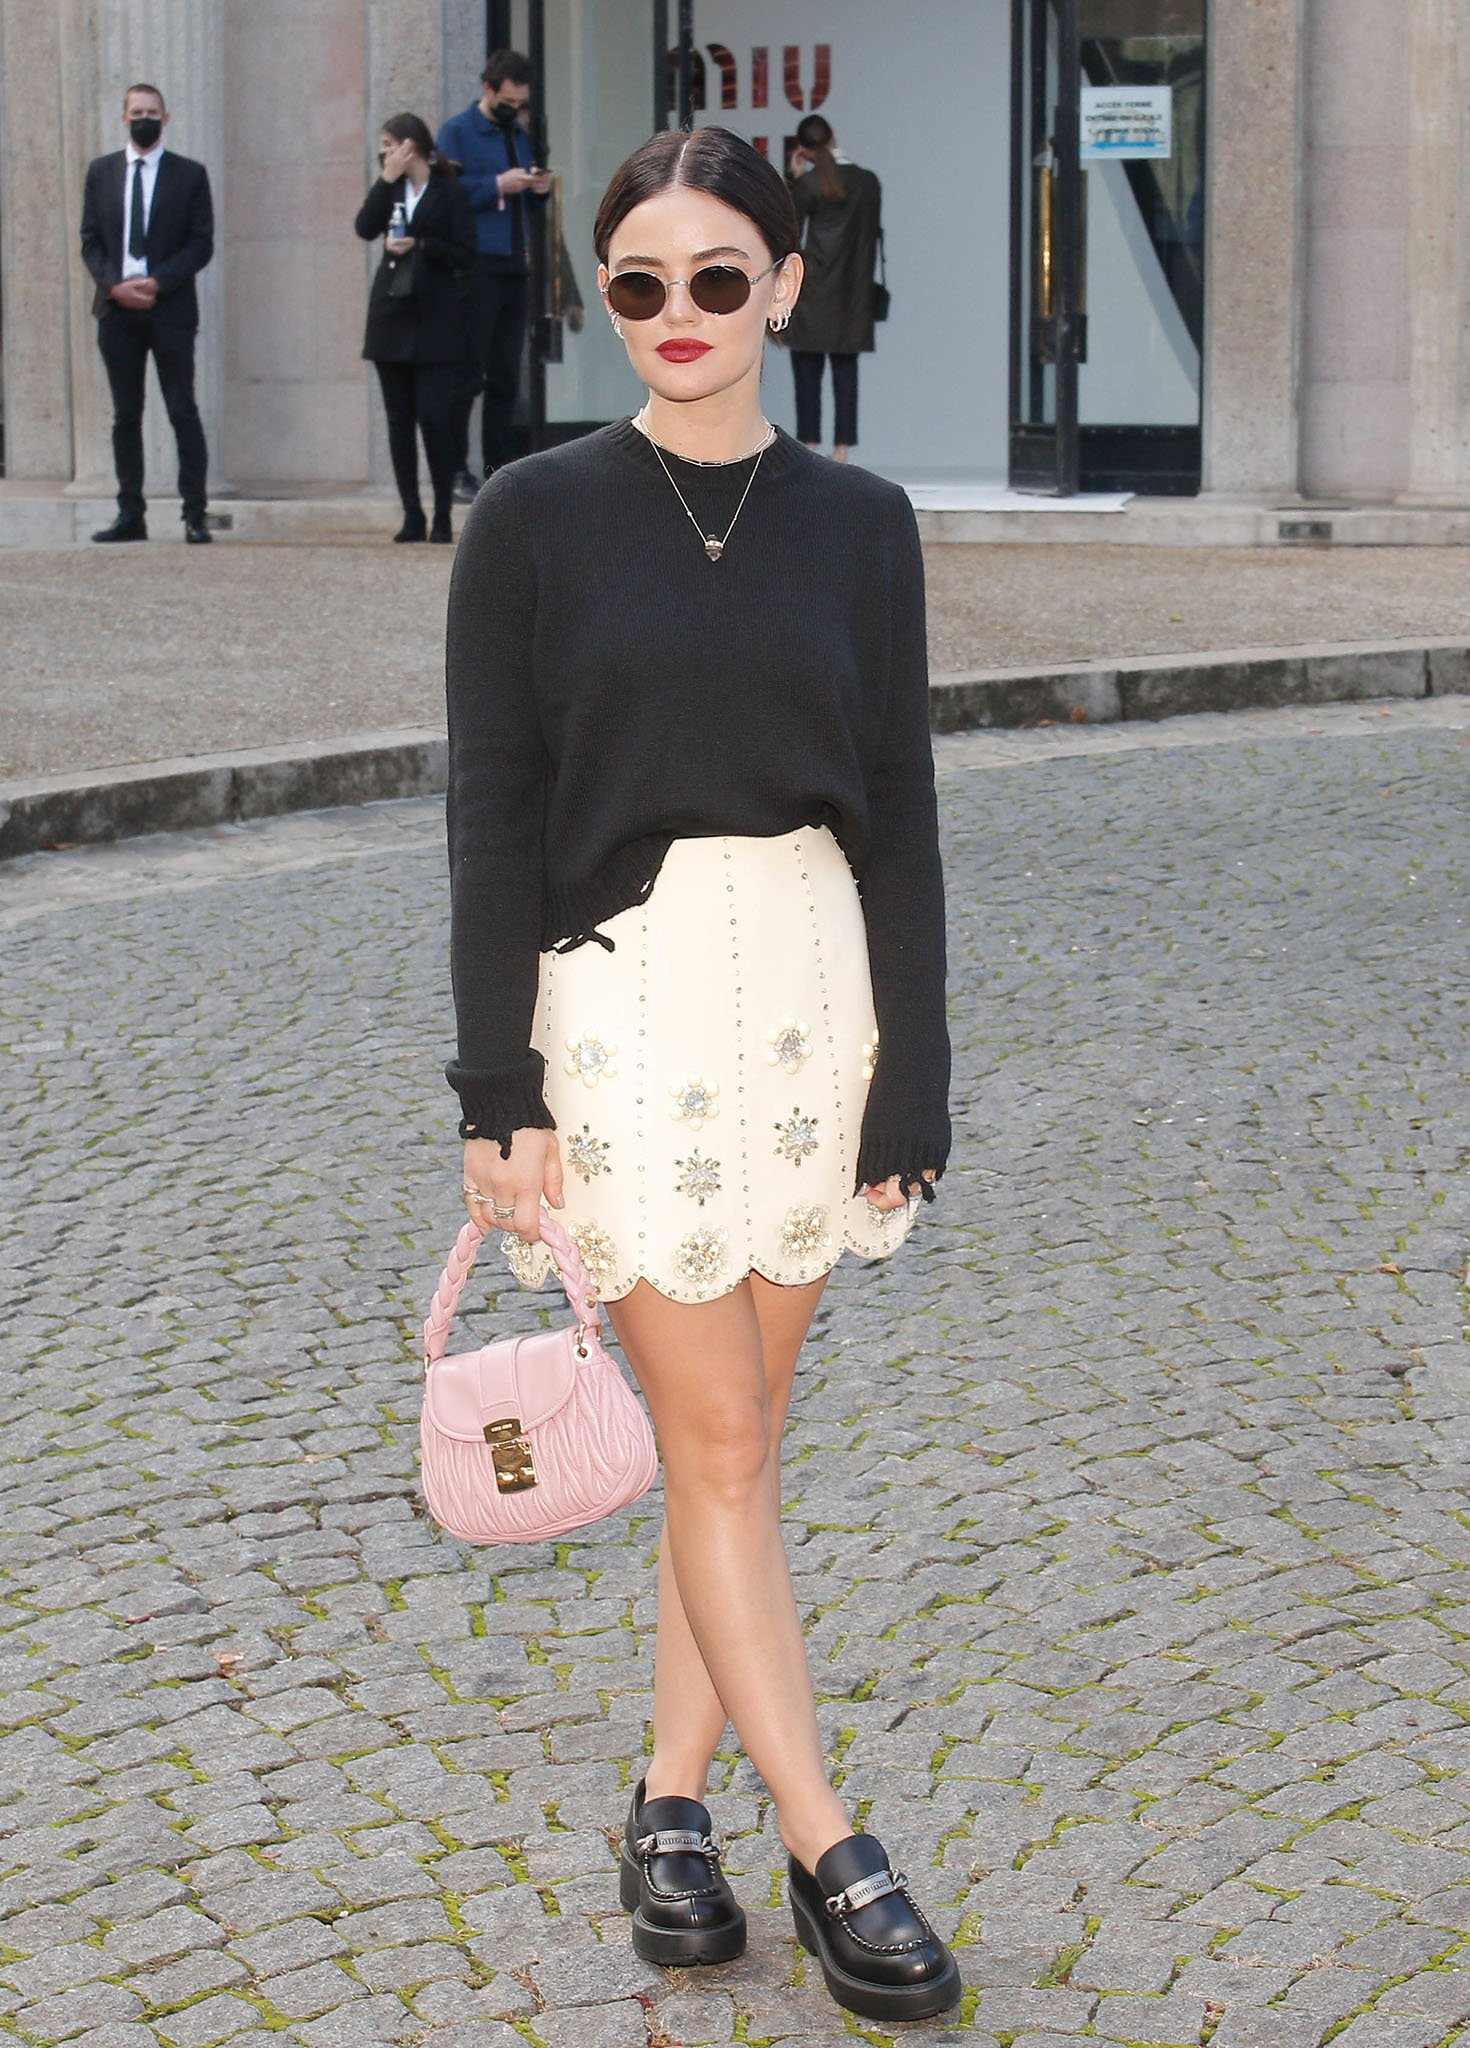 Lucy Hale attends Miu Miu's fashion show during Paris Fashion Week on October 5, 2021